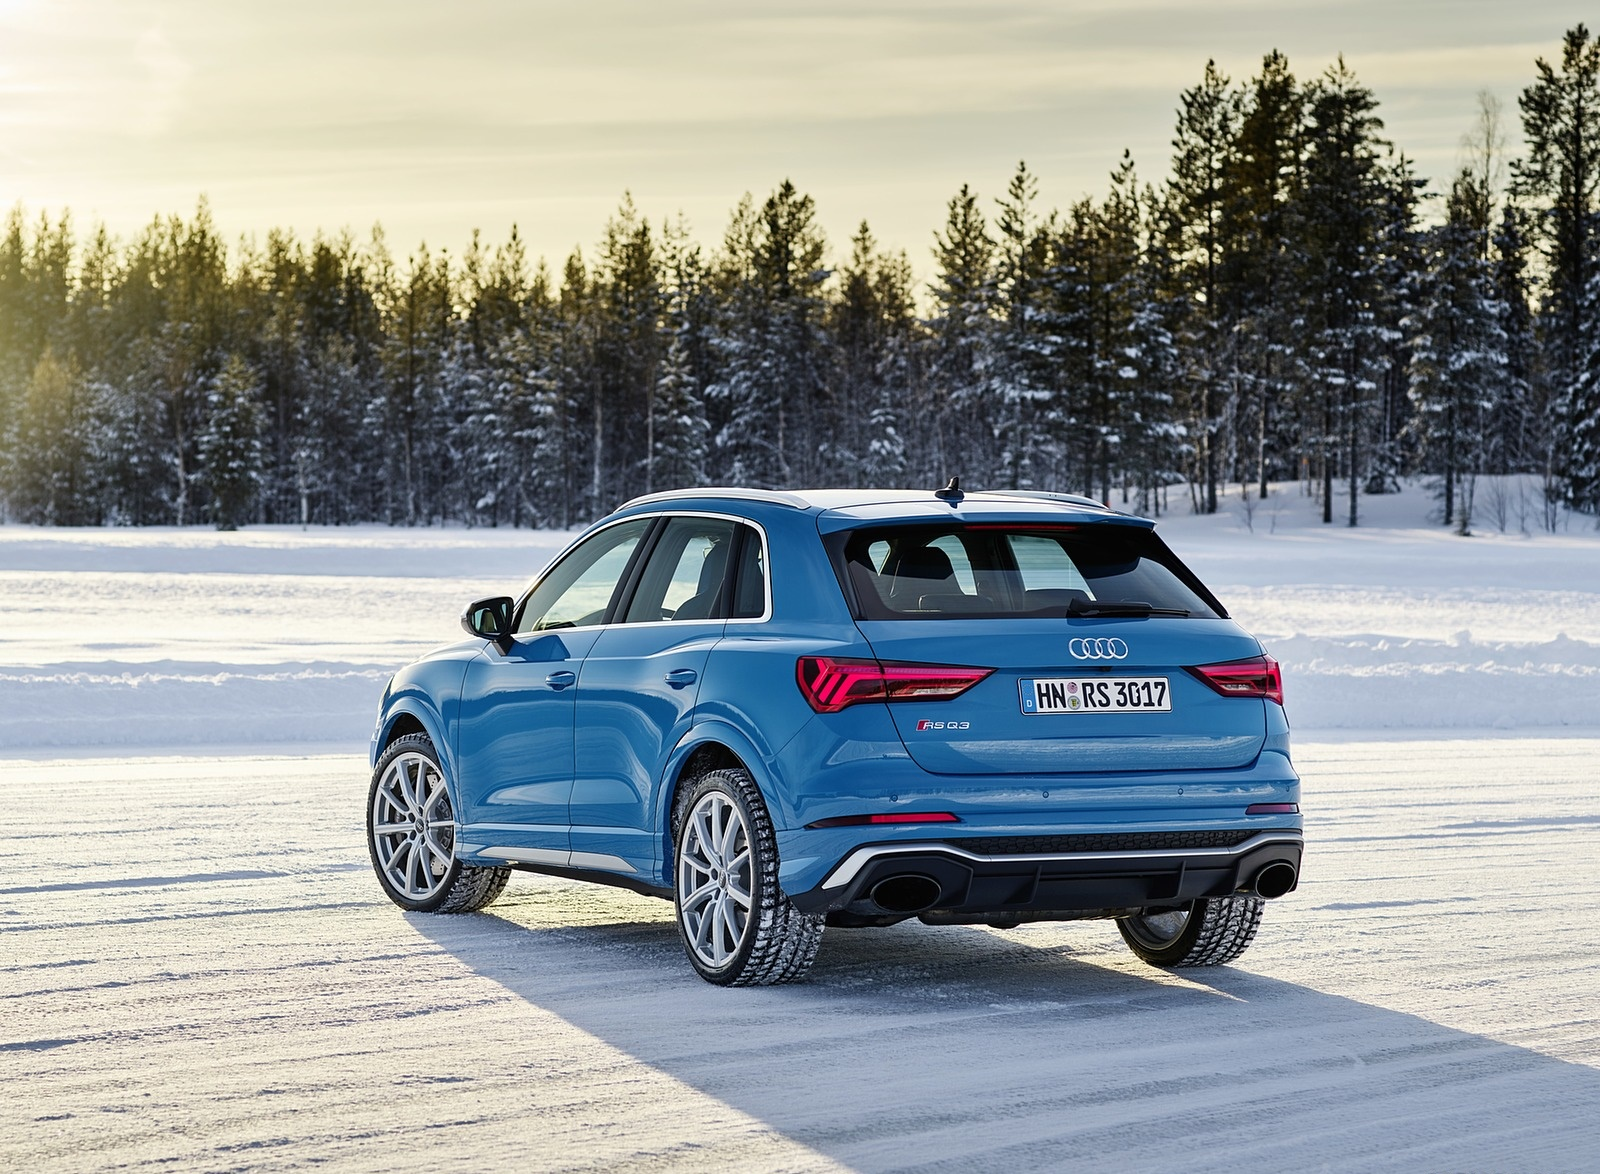 2020 Audi RS Q3 (Color: Turbo Blue) Rear Three-Quarter Wallpapers #48 of 116